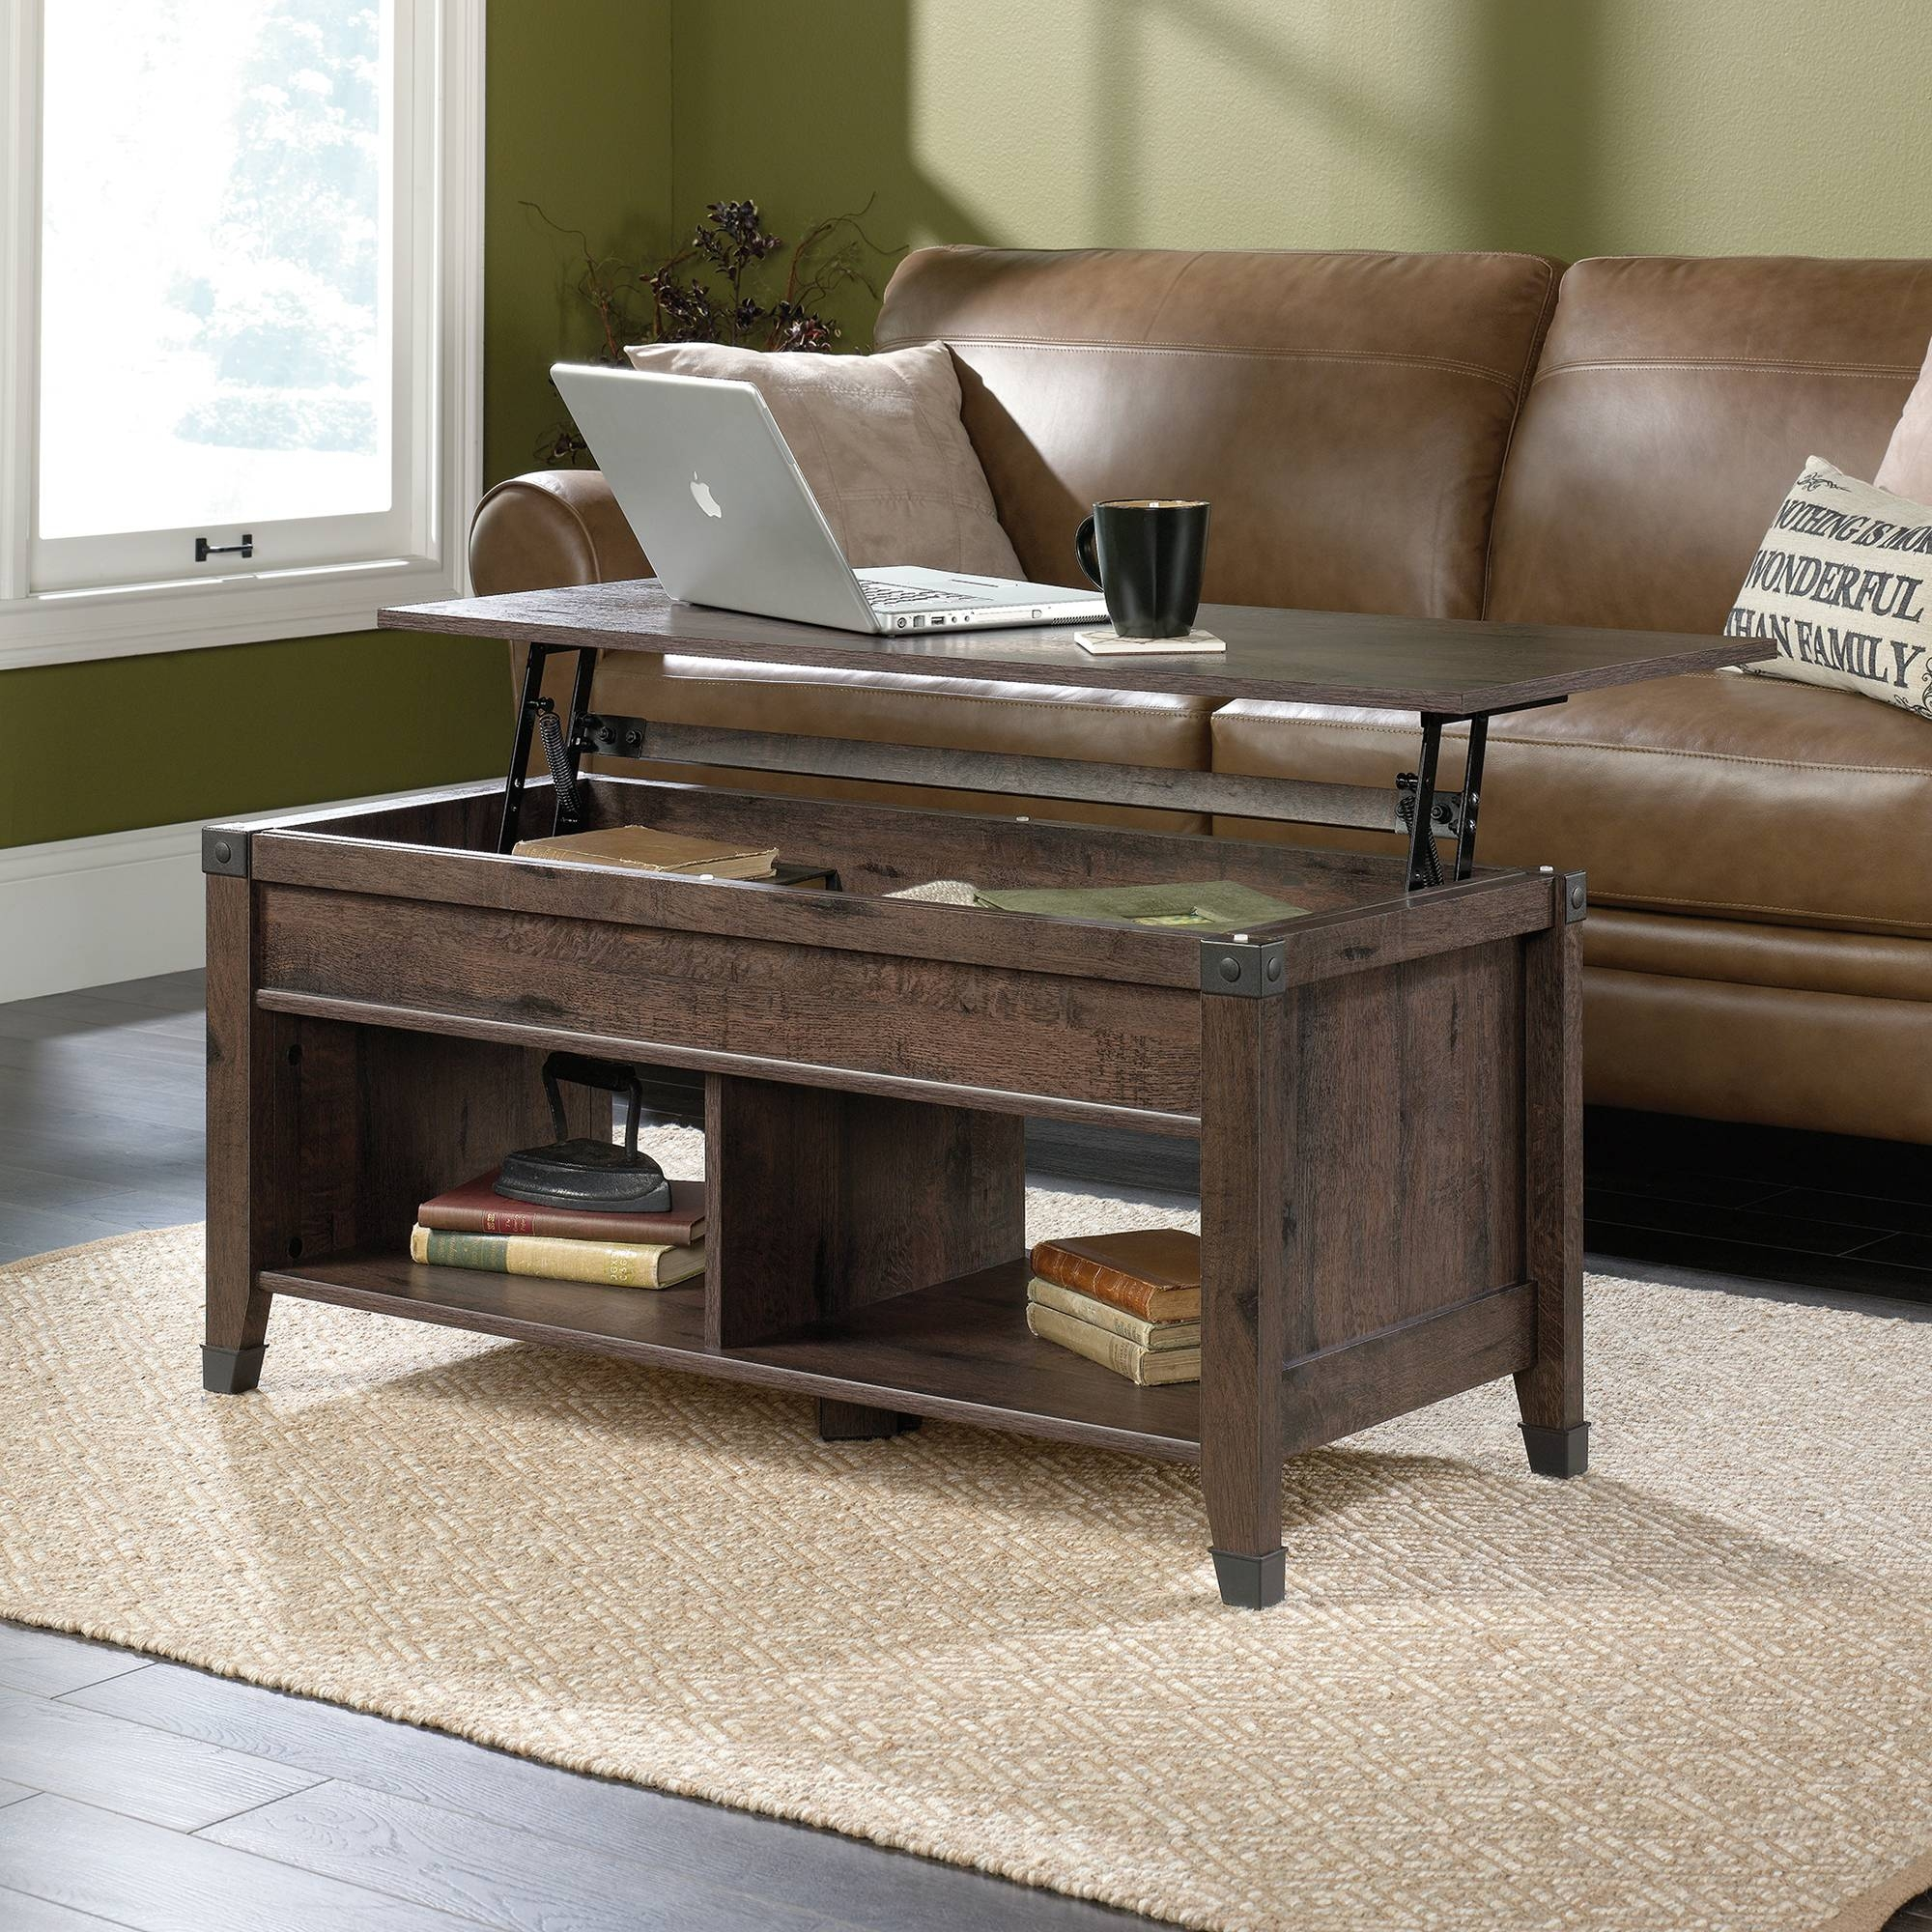 Carson Forge | Lift-Top Coffee Table | 420421 | Sauder for Lift Top Coffee Tables (Image 4 of 30)